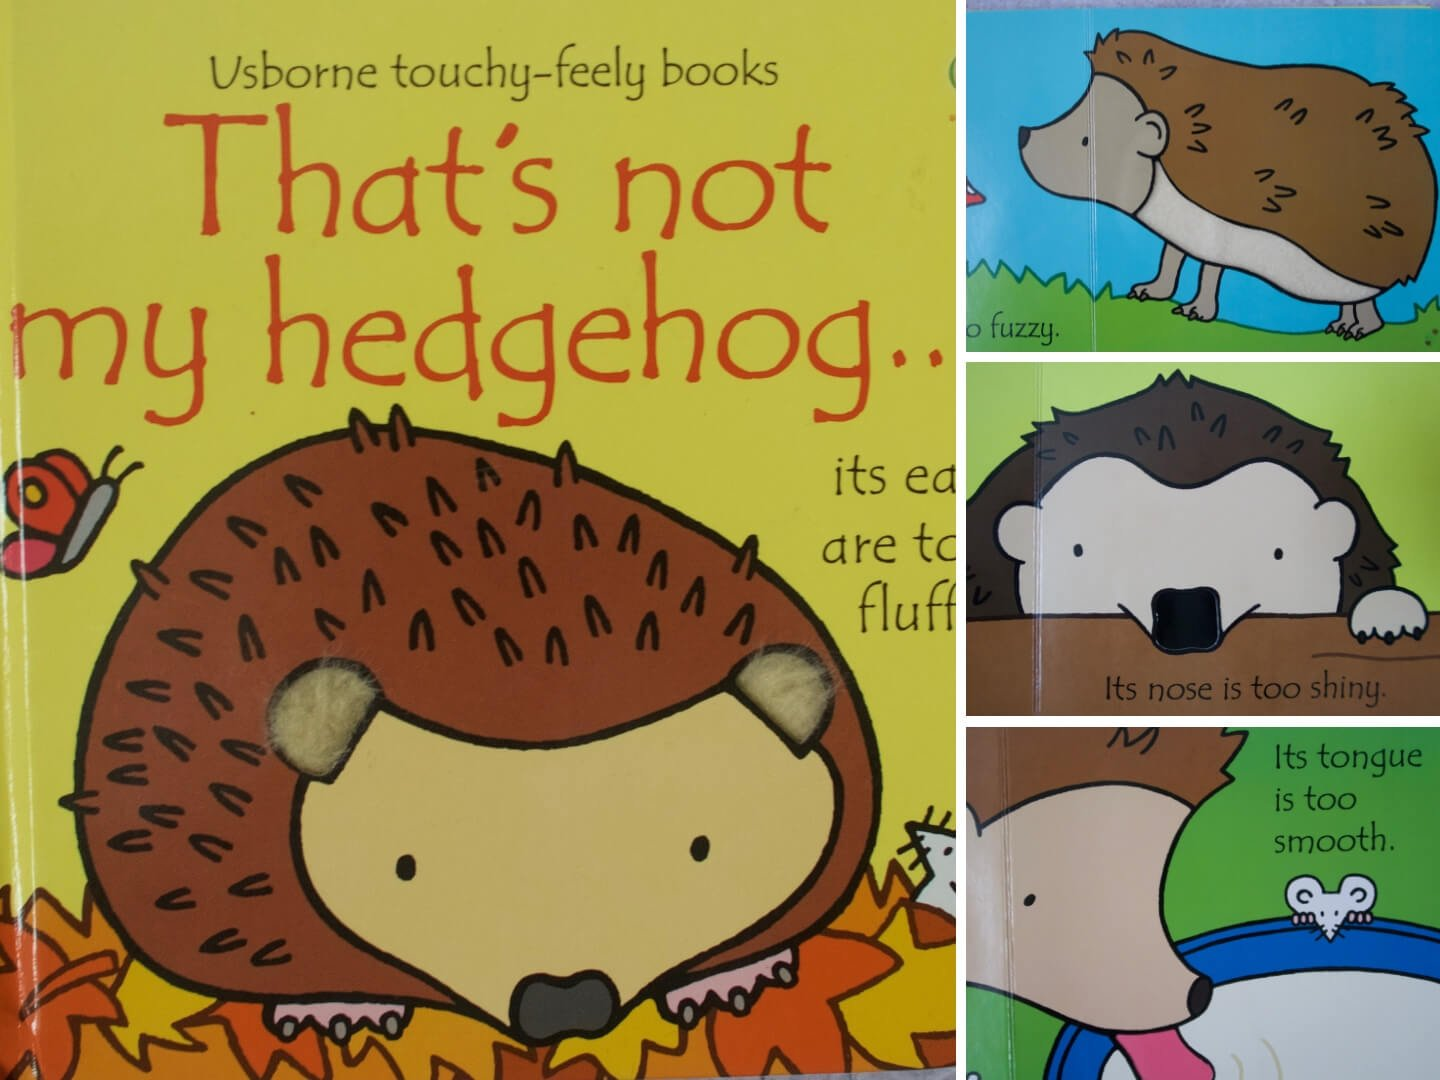 That's not my hedgehog by Fiona Watt.